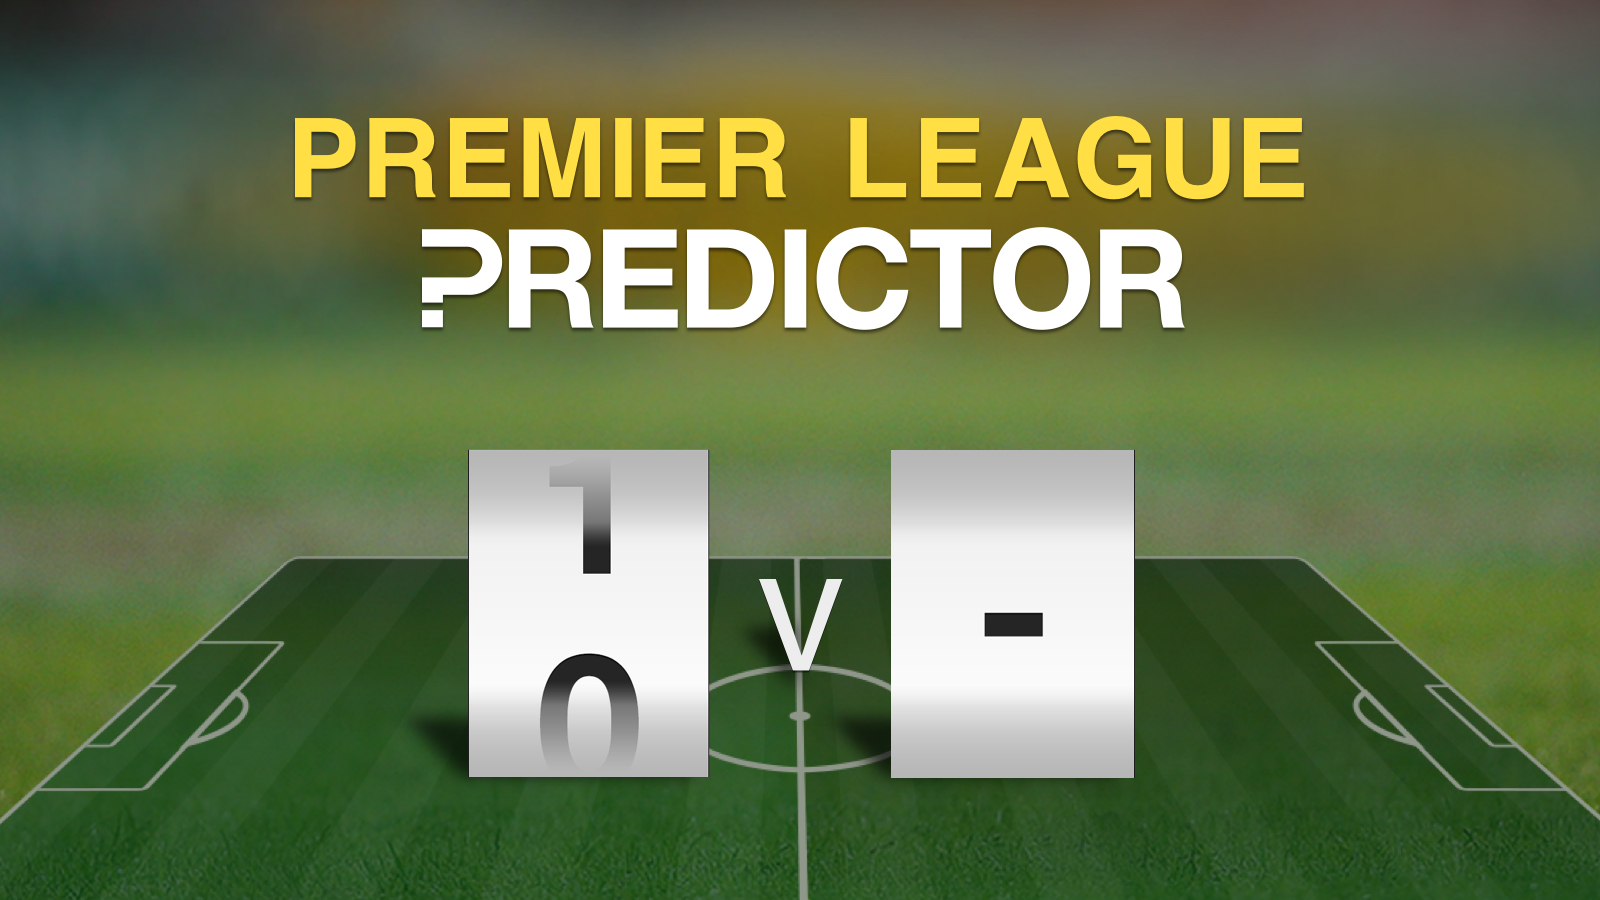 Premier League Predictor: BBC Sport game is back for new season